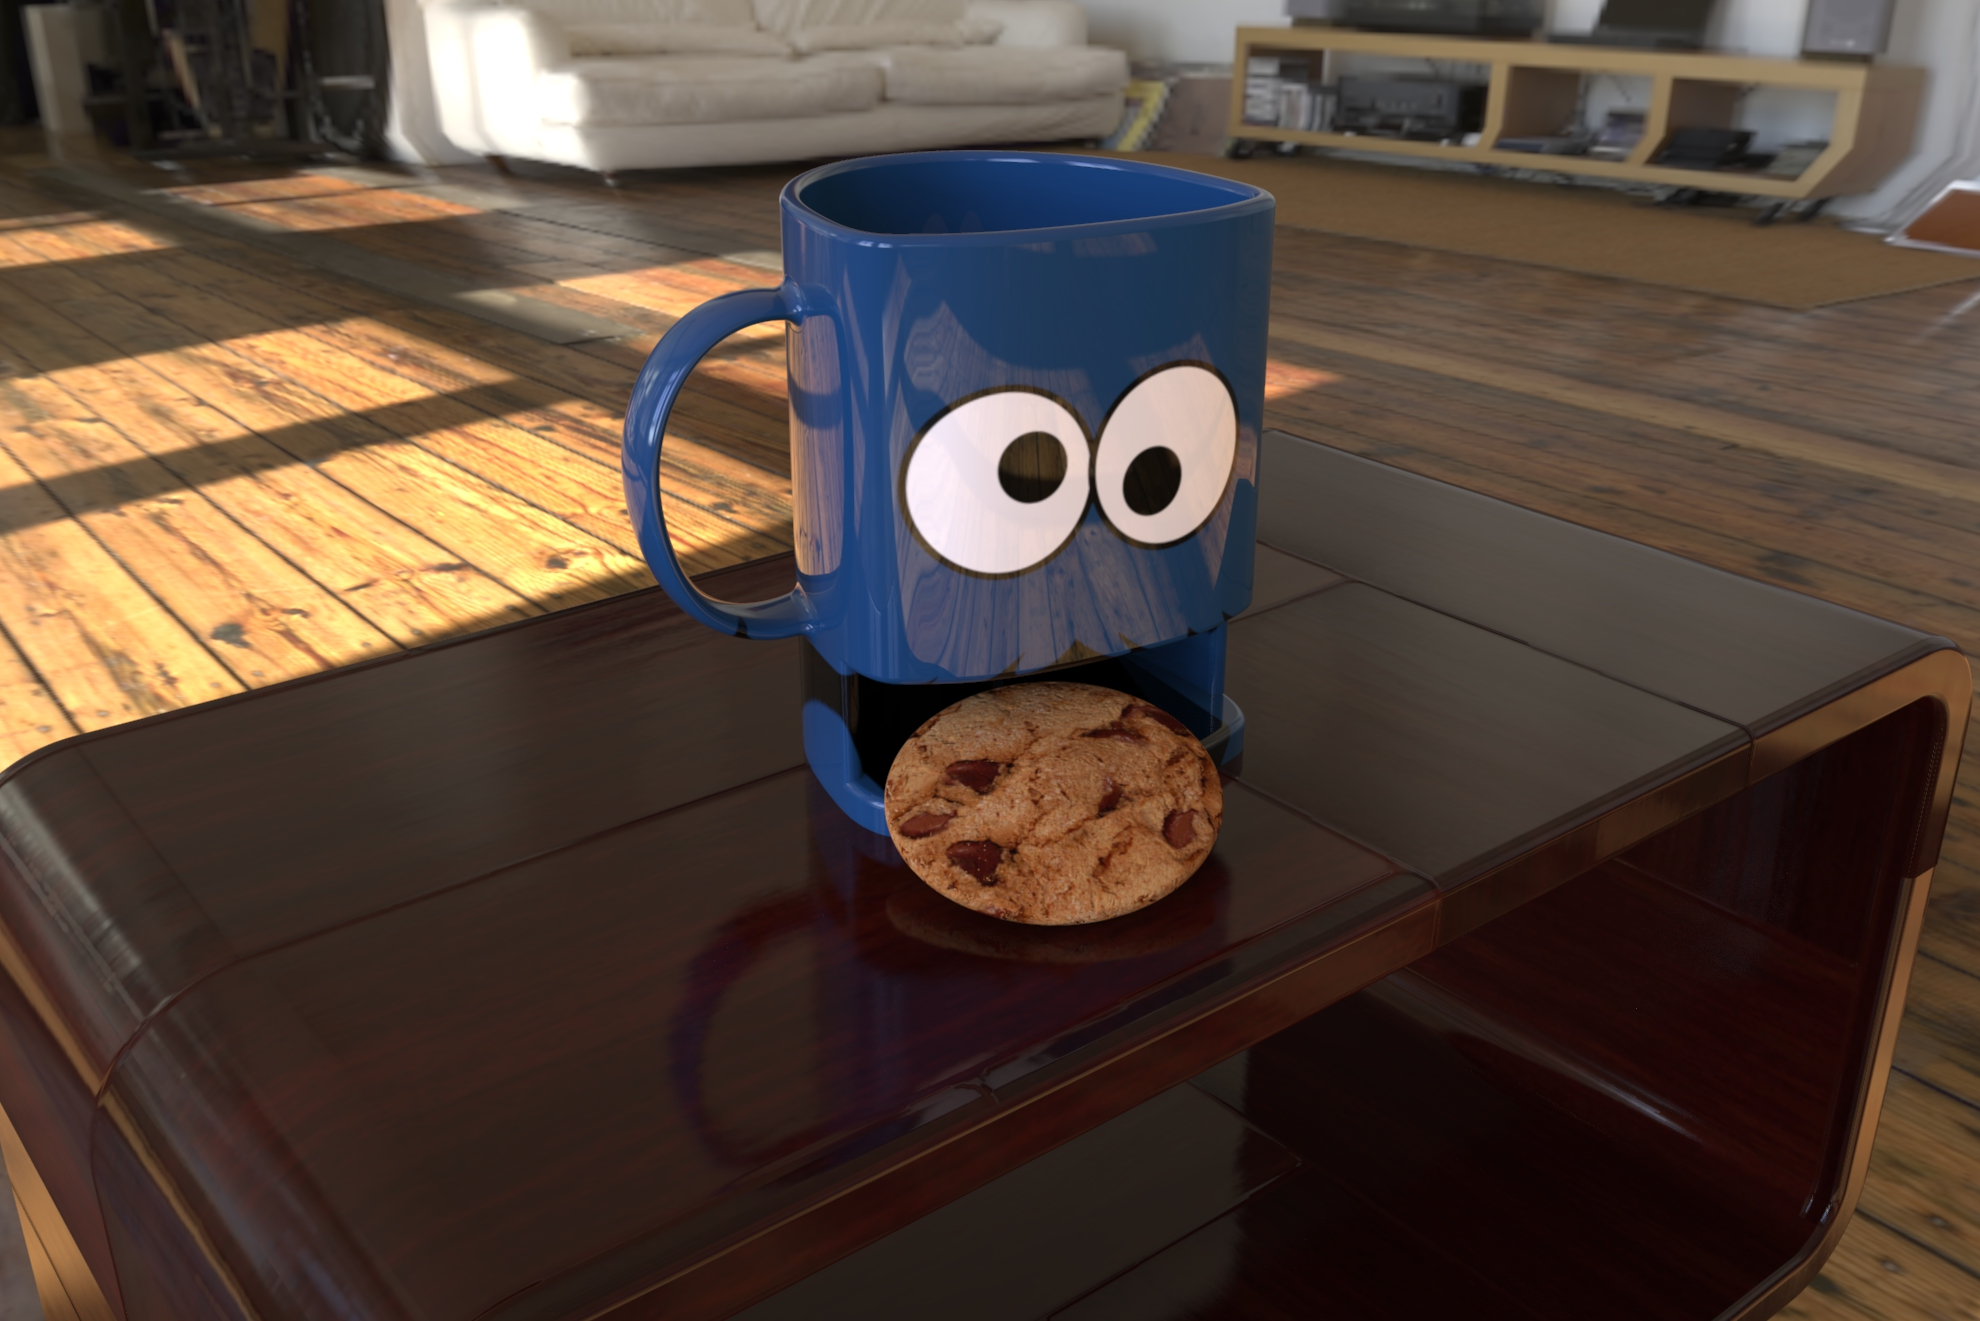 cookie hrnček 3d model ige igs sldprt obj 282056